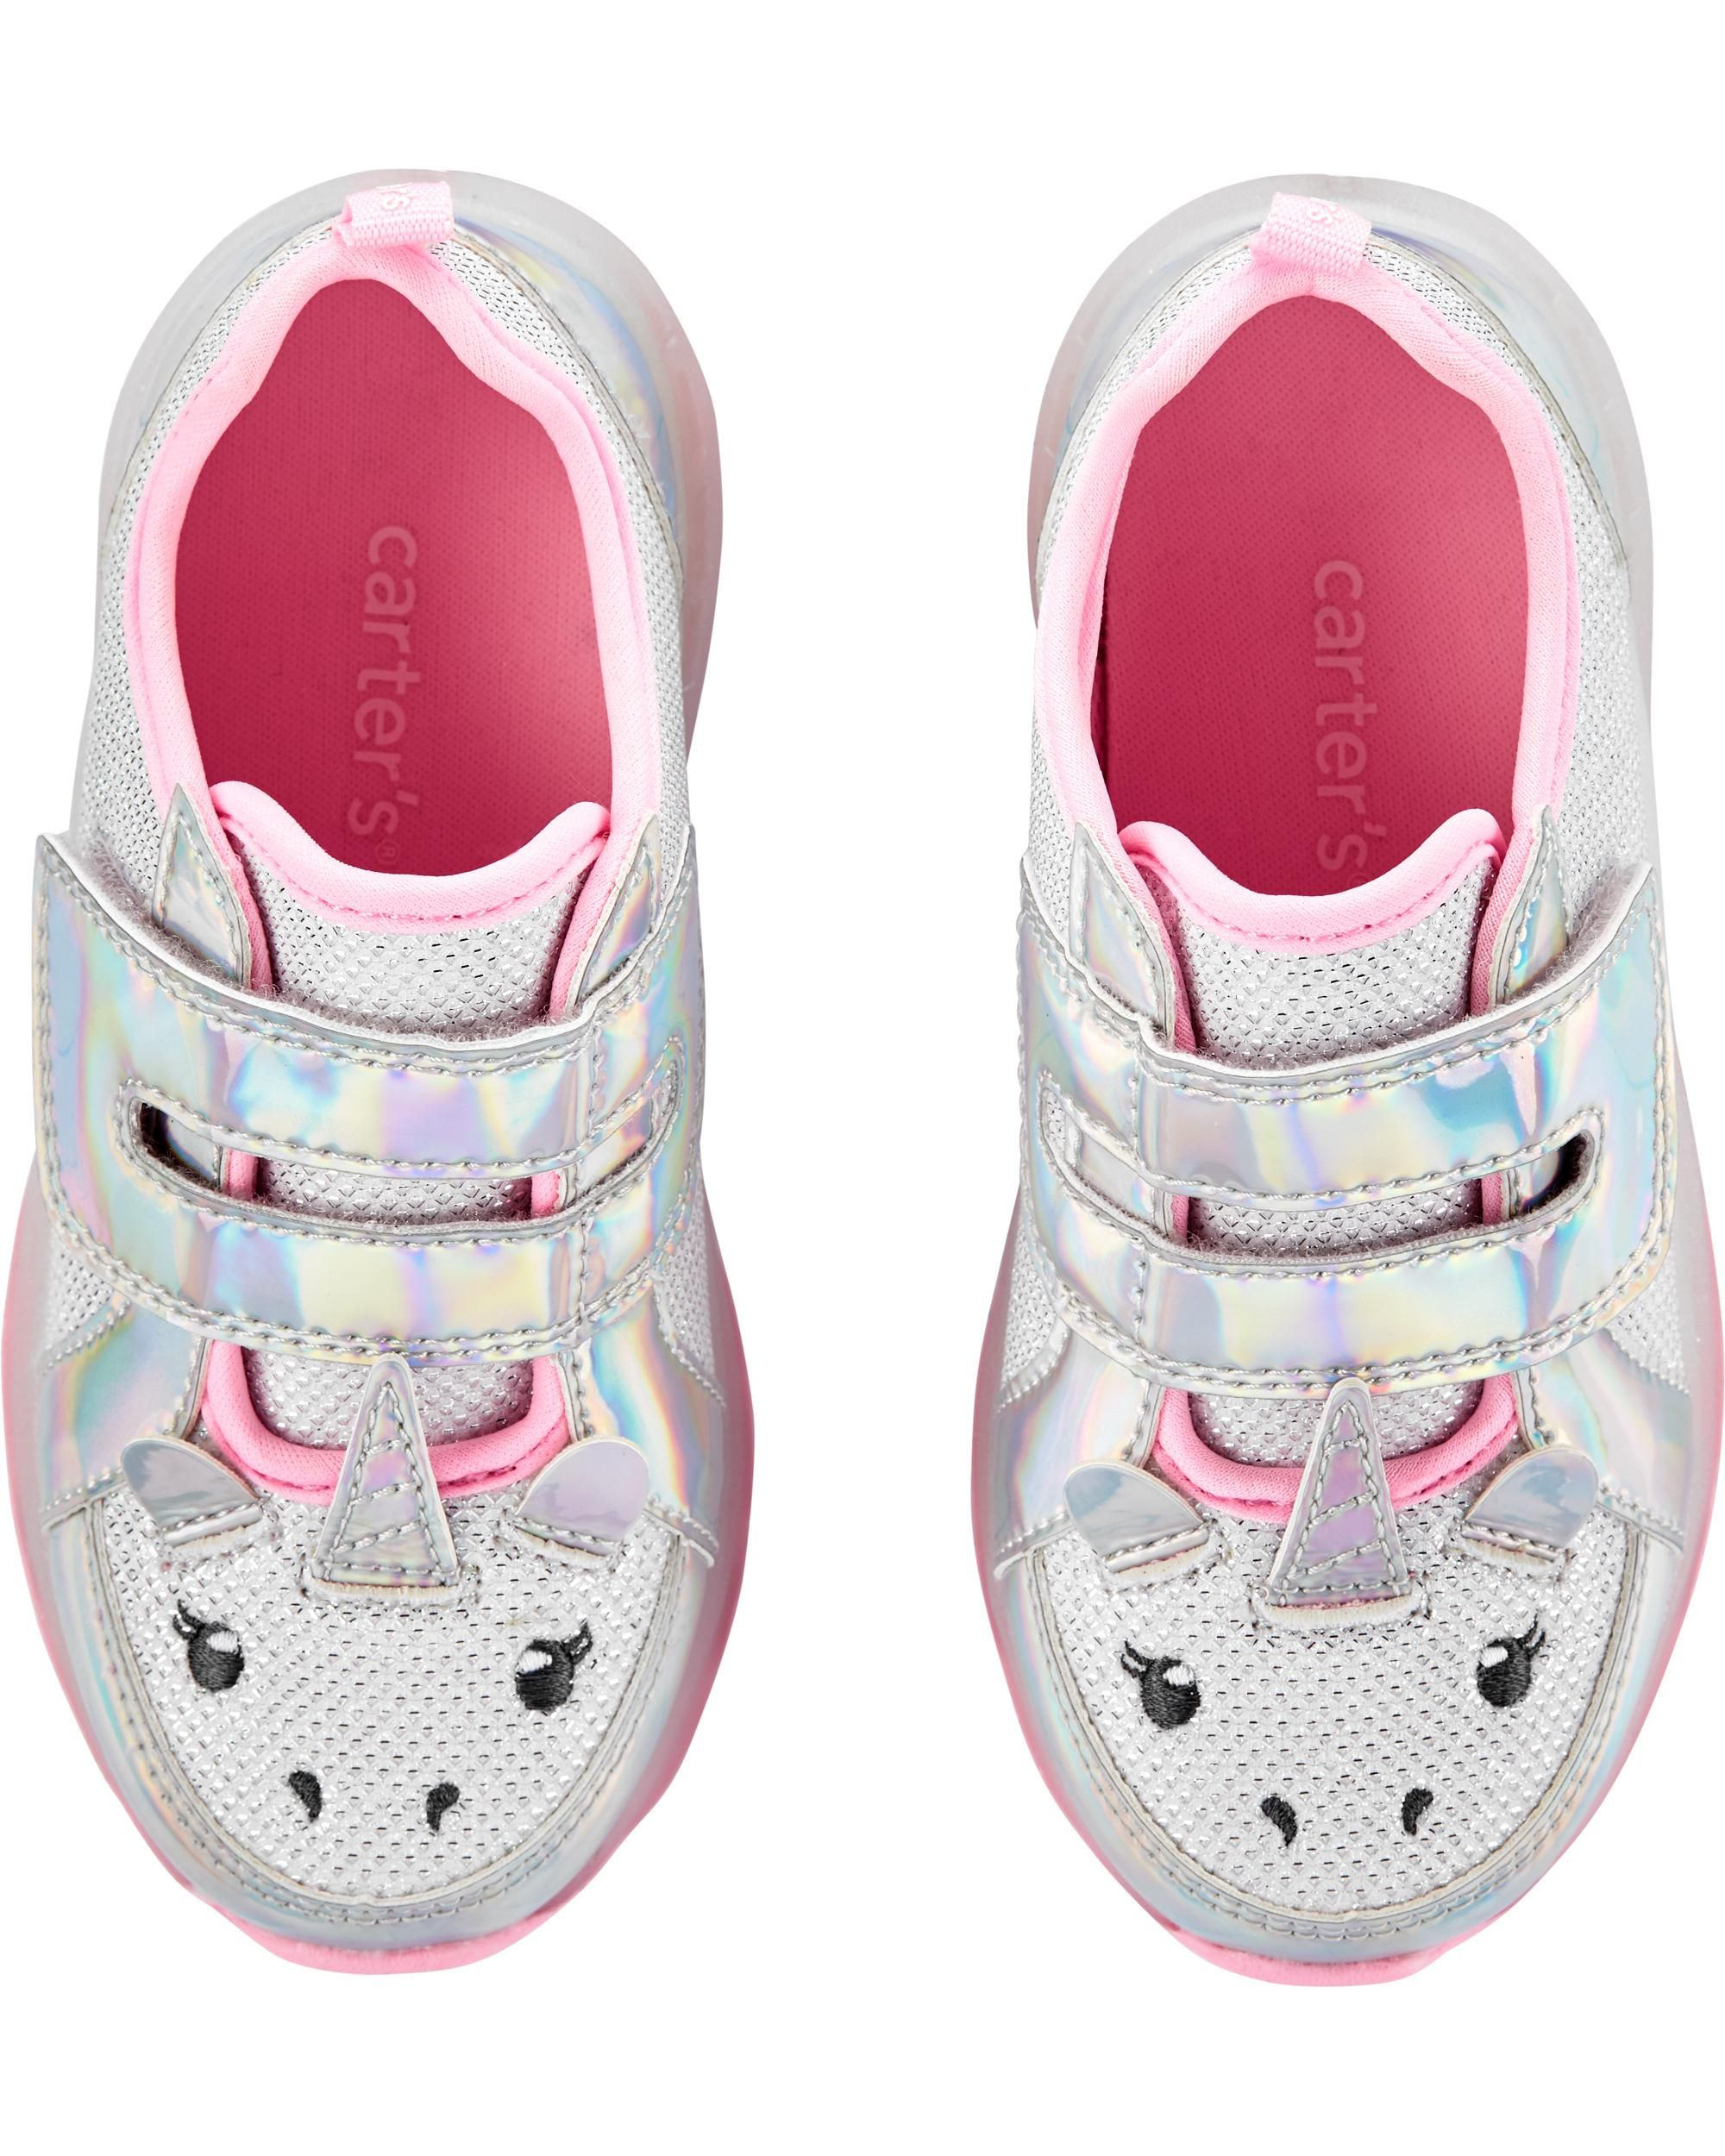 Carter's Unicorn Light-Up Sneakers in